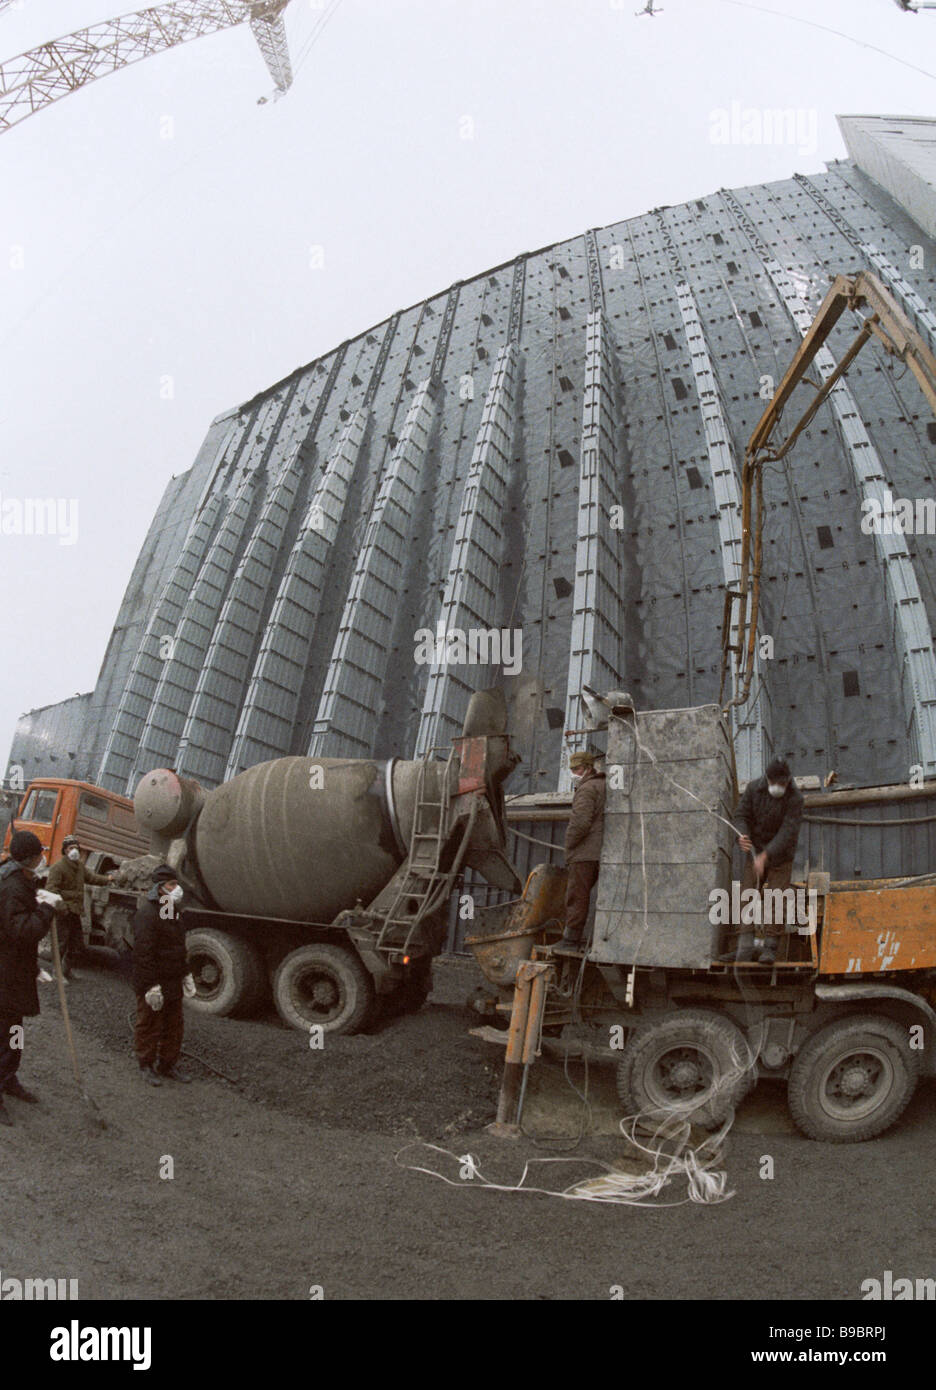 The covering of the damaged 4th unit at Chernobyl nuclear power plant - Stock Image